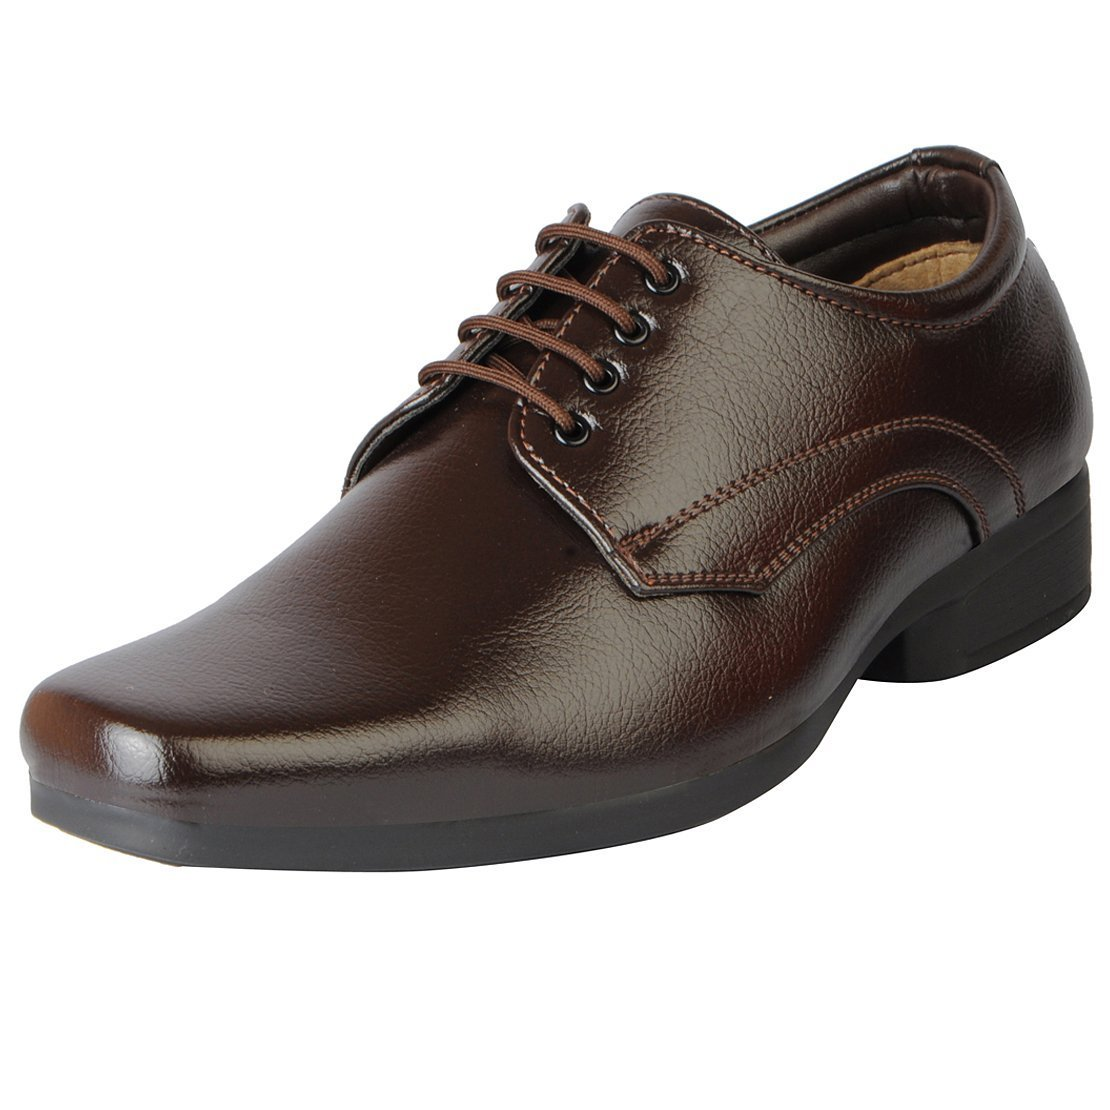 BATA Men's Formal Lace up Shoes (6 UK, Brown) (B07BB2W8T4) Amazon Price History, Amazon Price Tracker